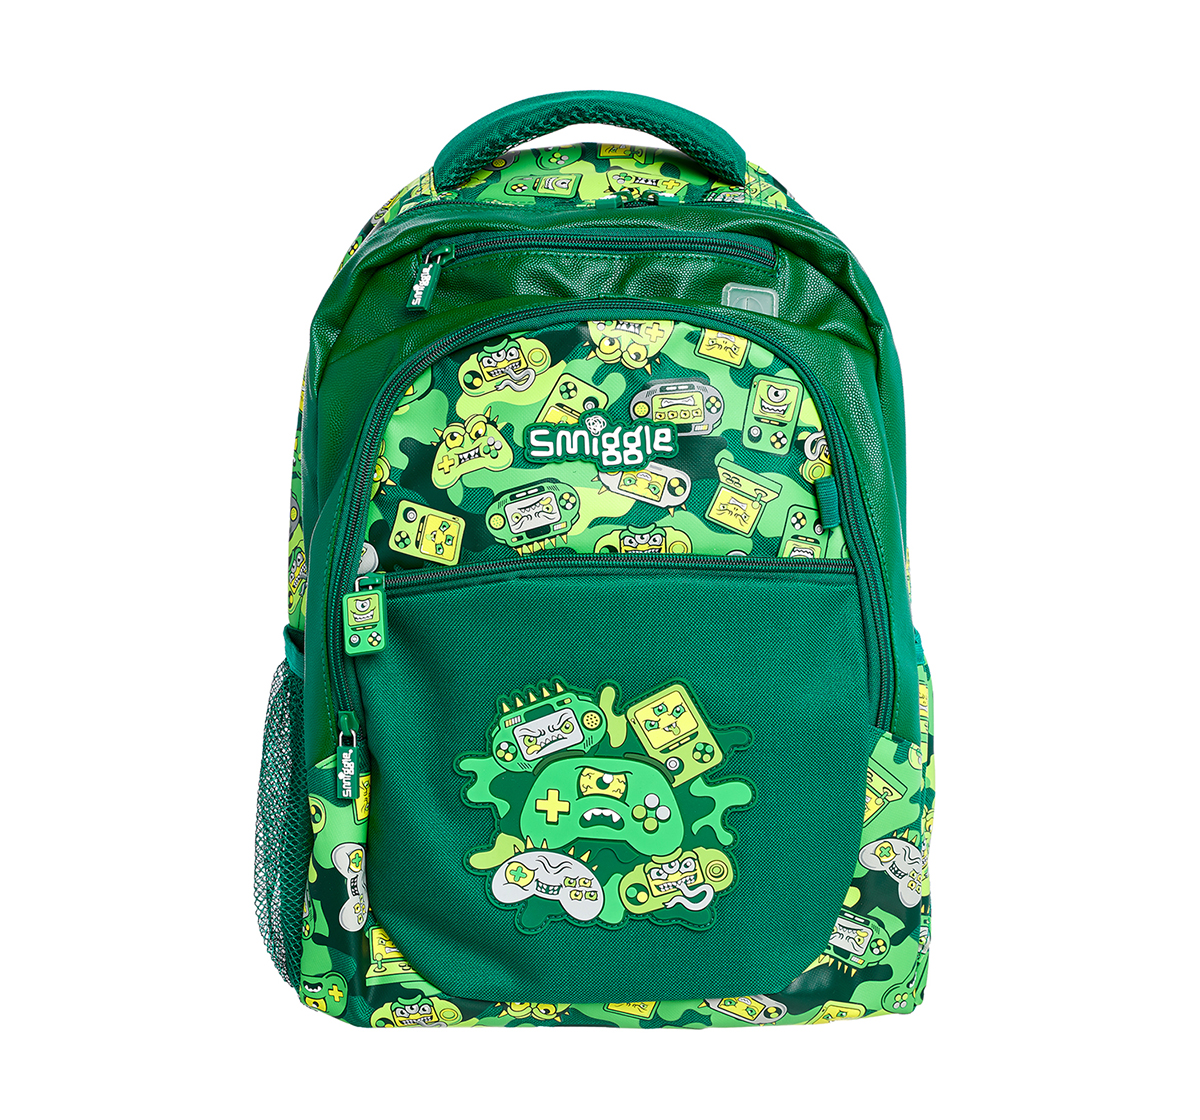 Smiggle   Smiggle Far Away Backpack - Gaming Print Bags for Kids age 3Y+ (Green)